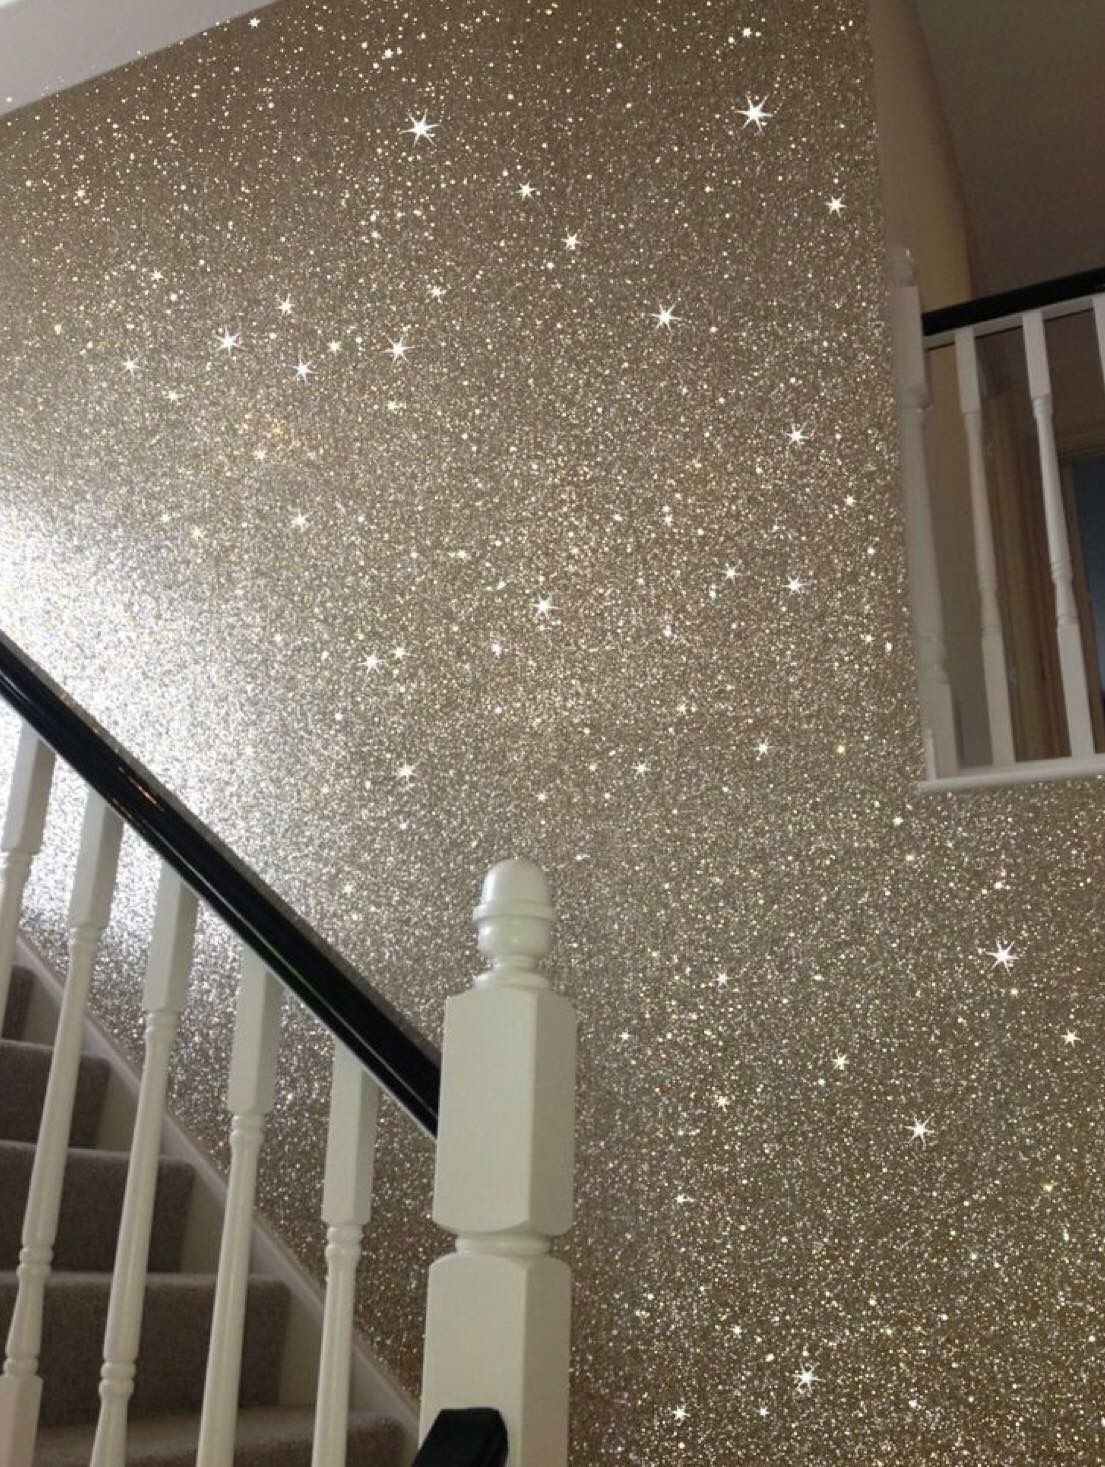 At least one wall in our house will be this way #GlitterGrout #glittergrout